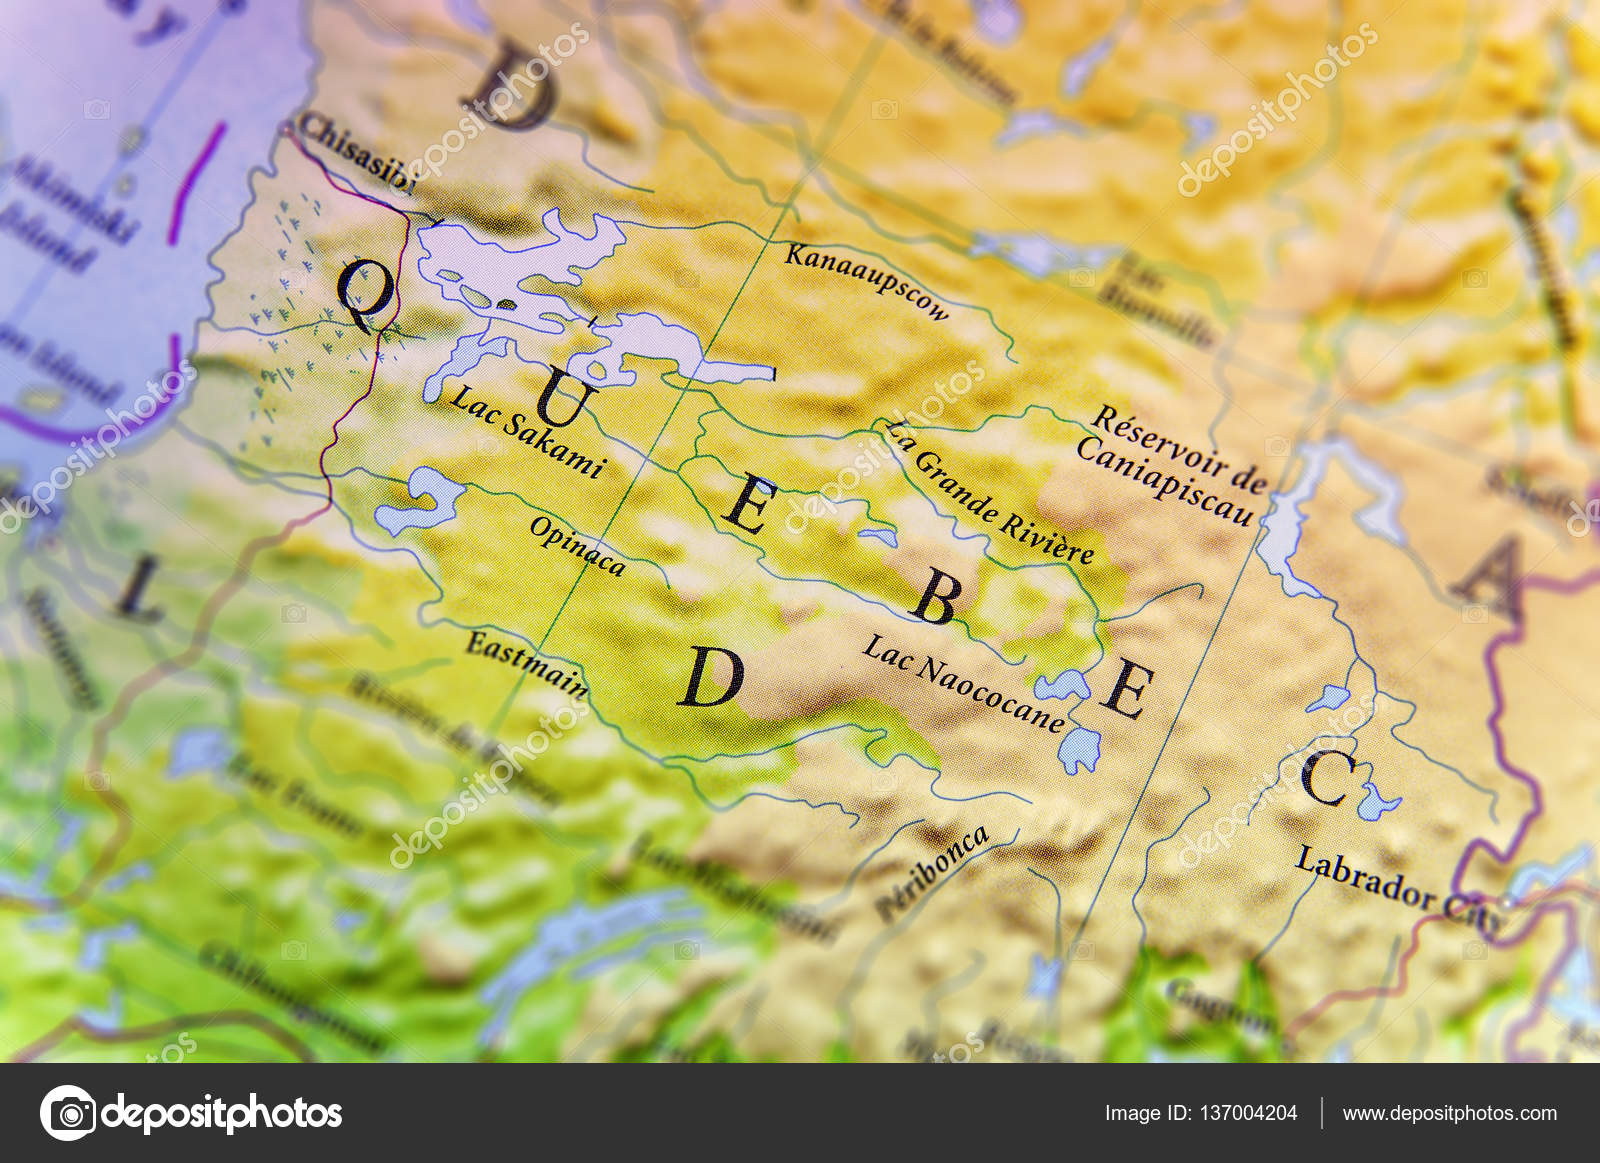 Geographic Map Of Canada State Quebec With Important Cities - Quebec map with cities